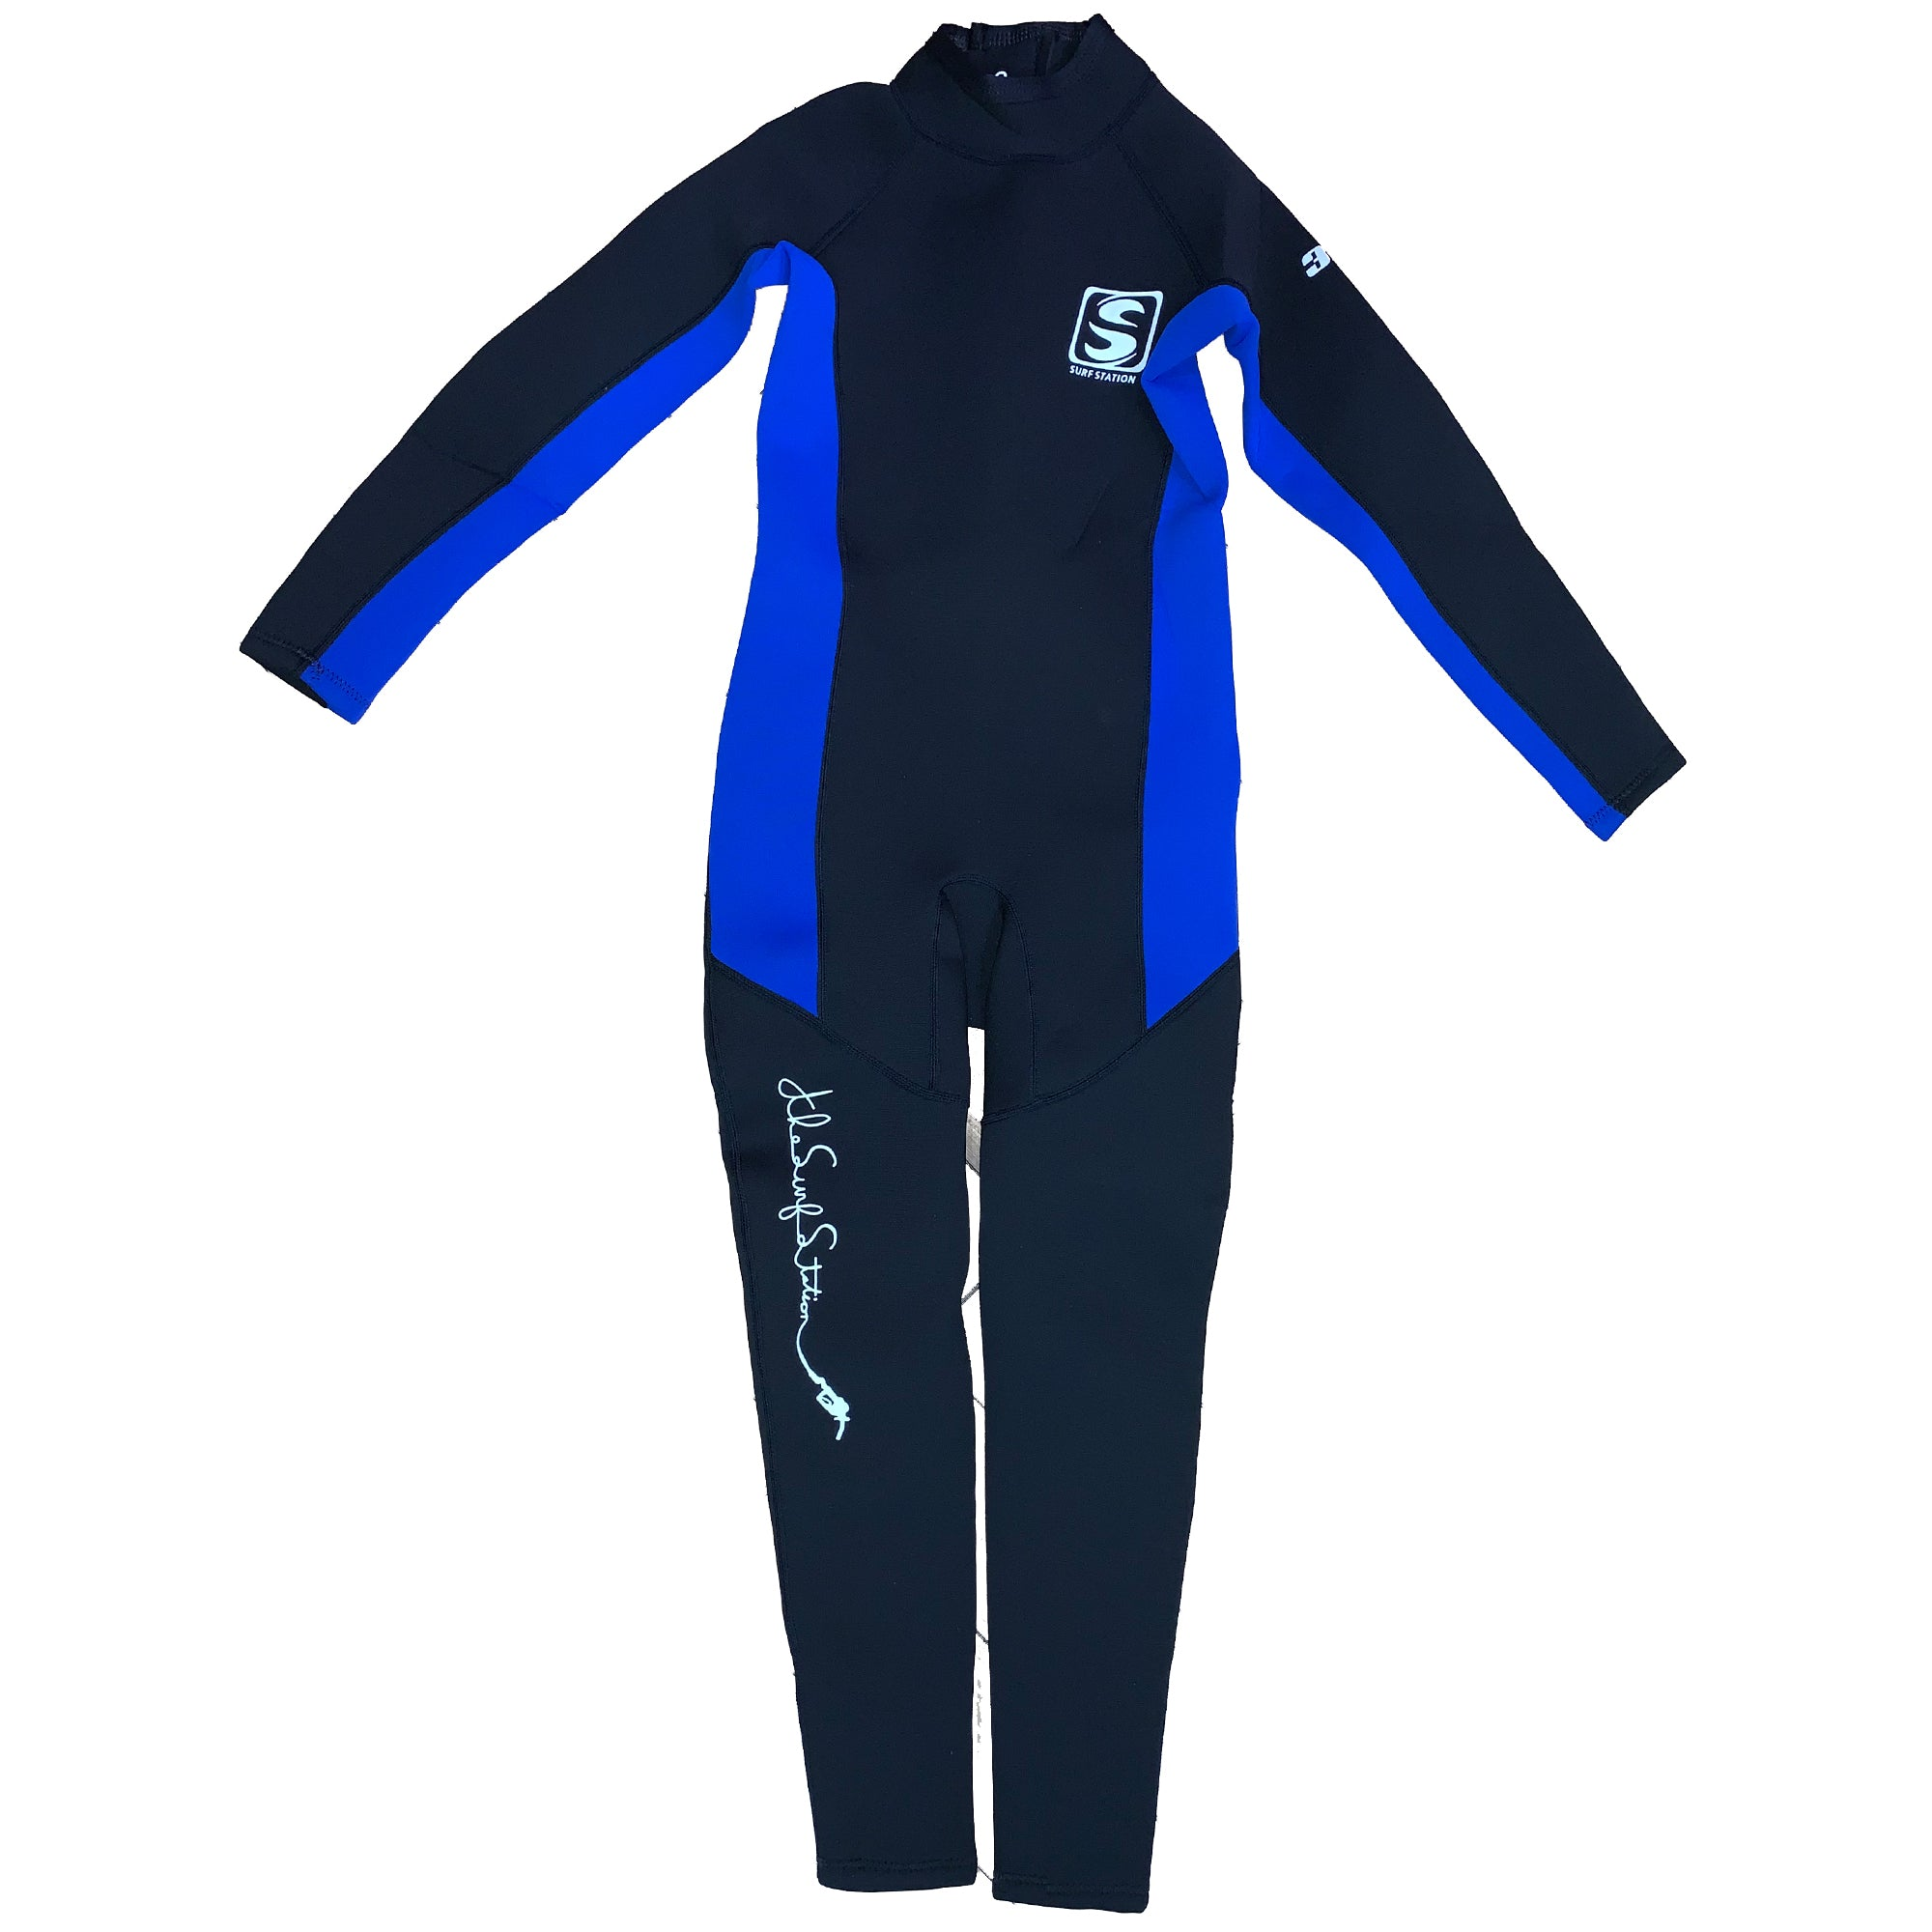 Surf Station 3/2 Youth L/S Fullsuit Wetsuit